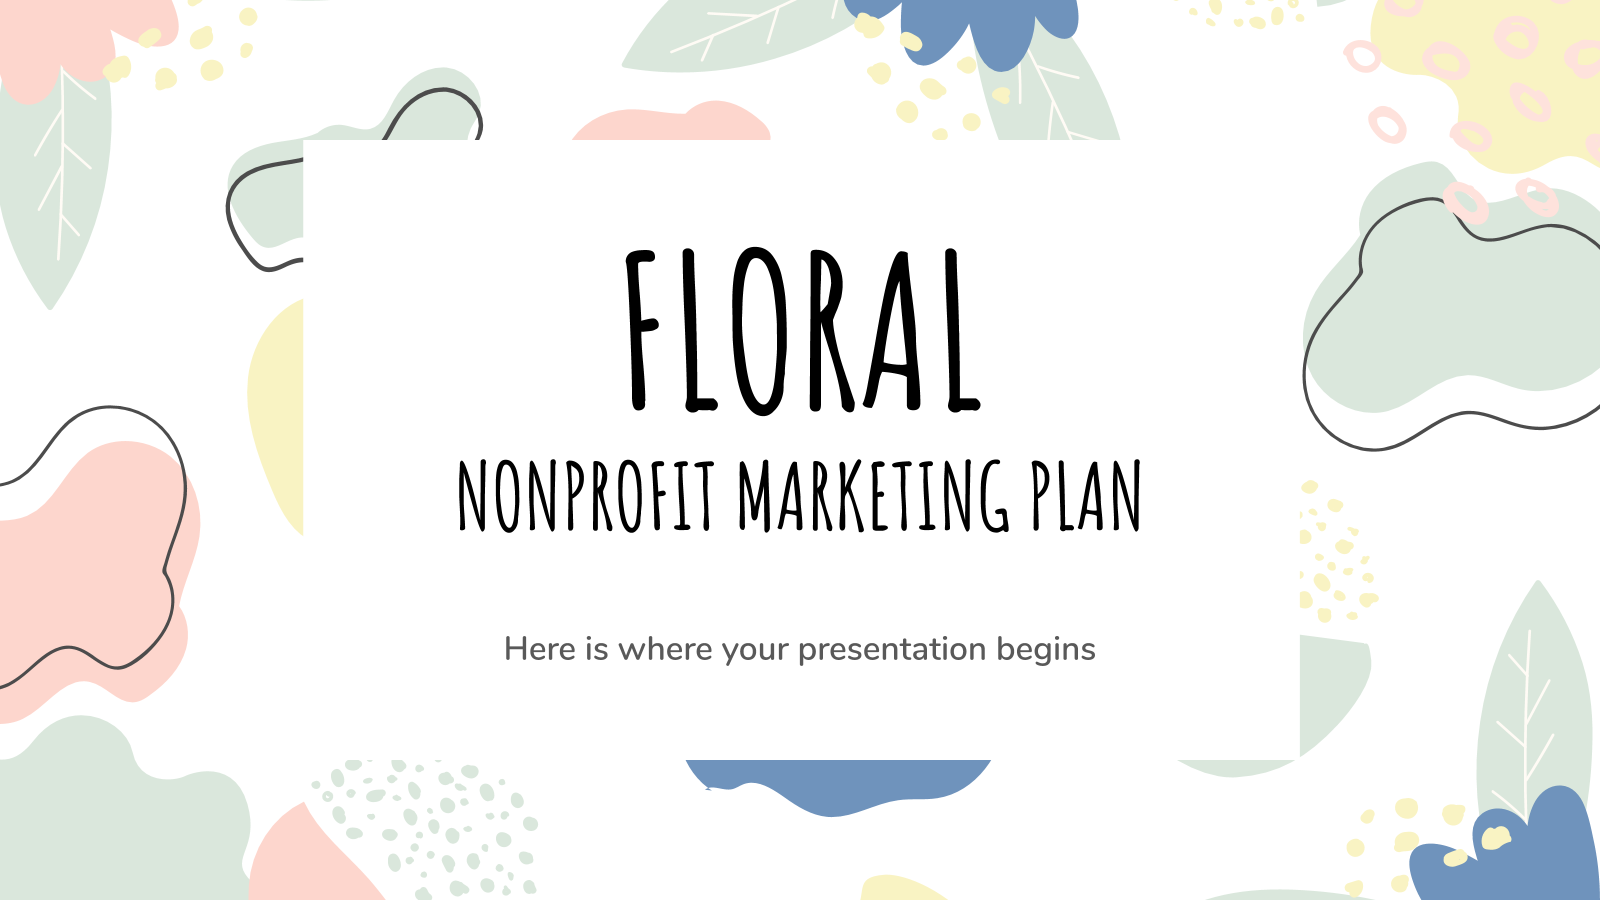 Floral Nonprofit Marketing Plan presentation template